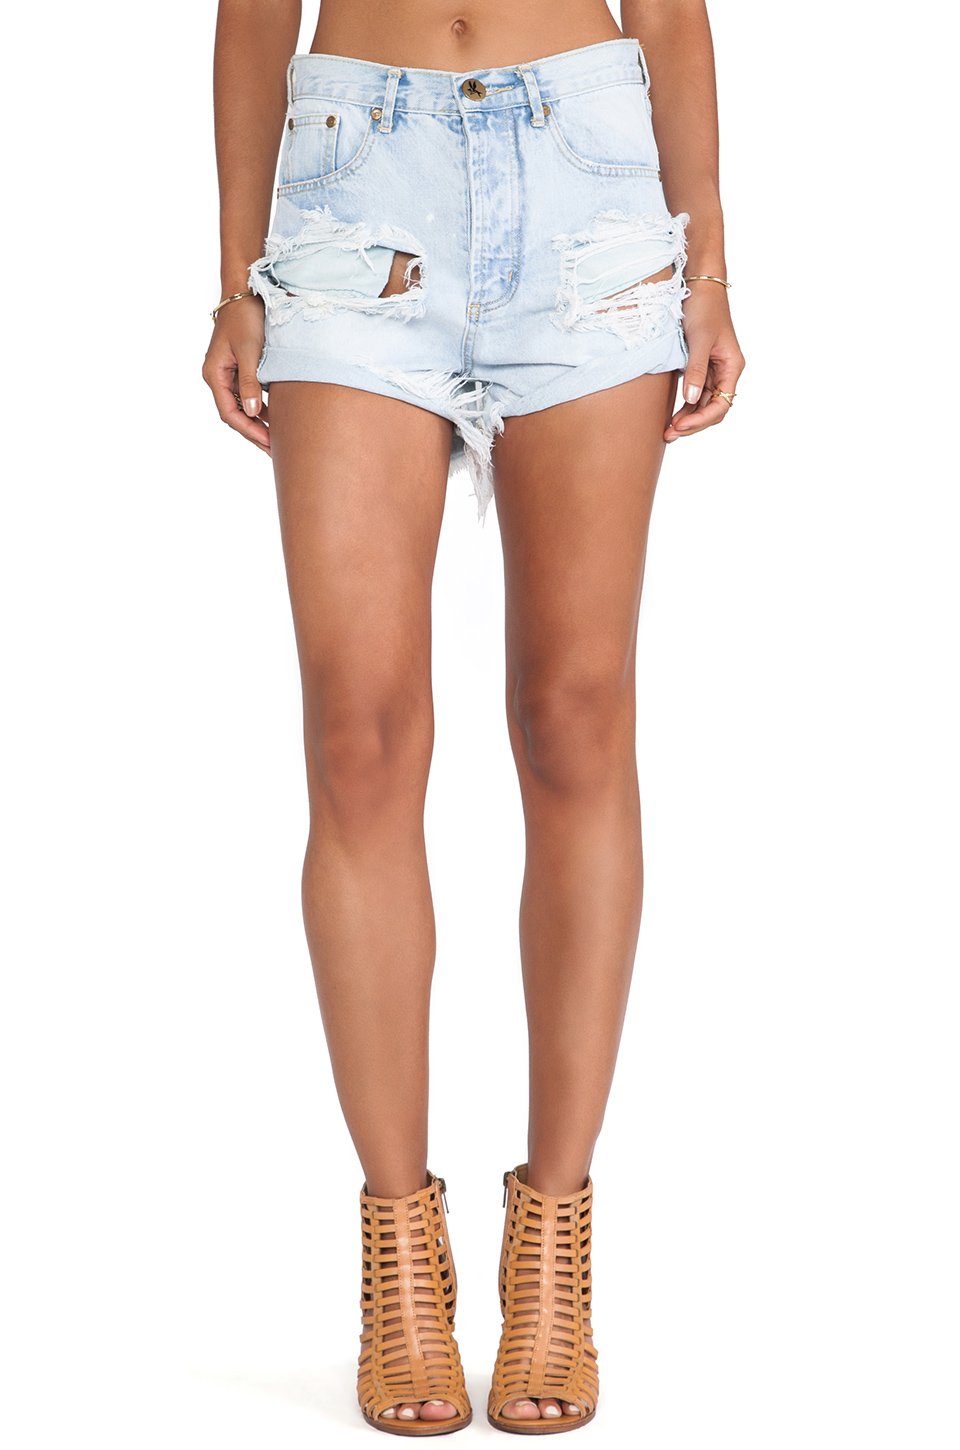 Shorts jeans outlaws from revolveclothing.com